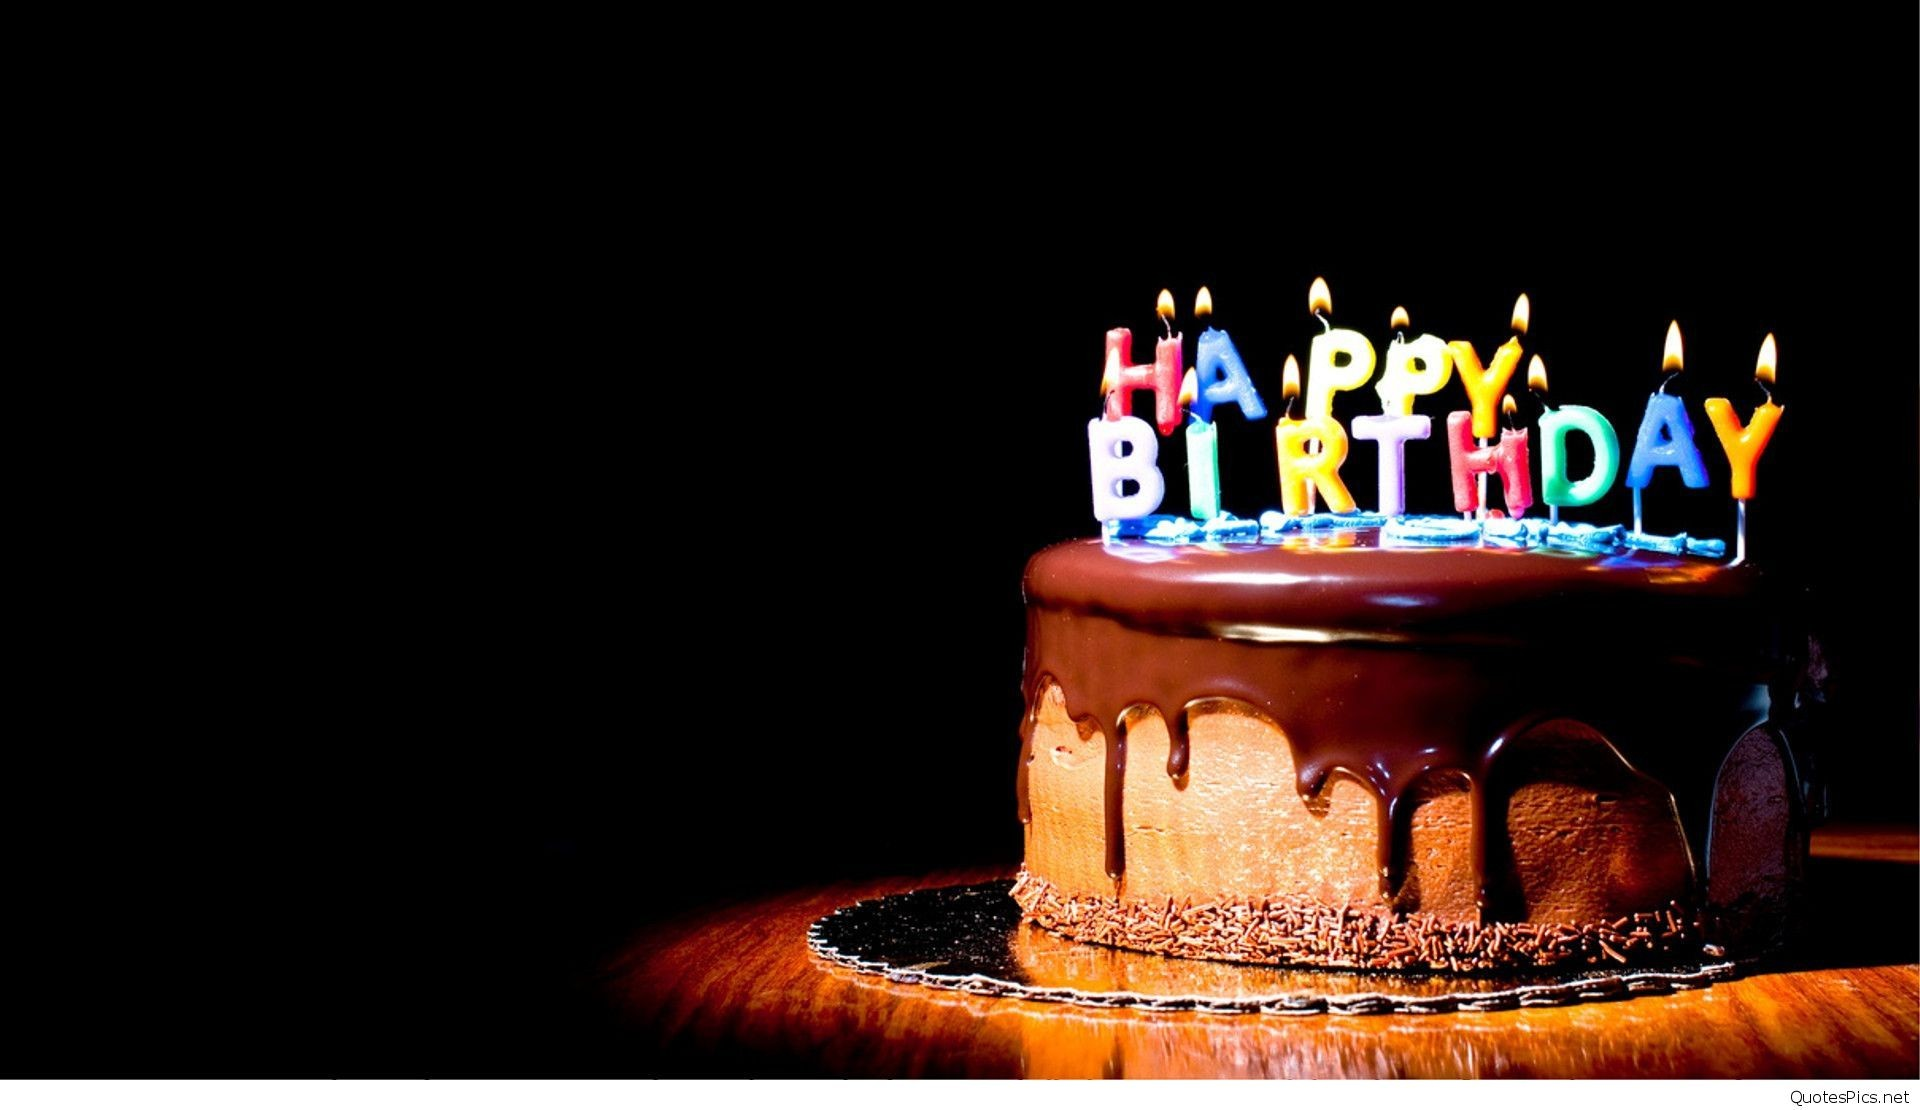 birthday background images hd ; 281963